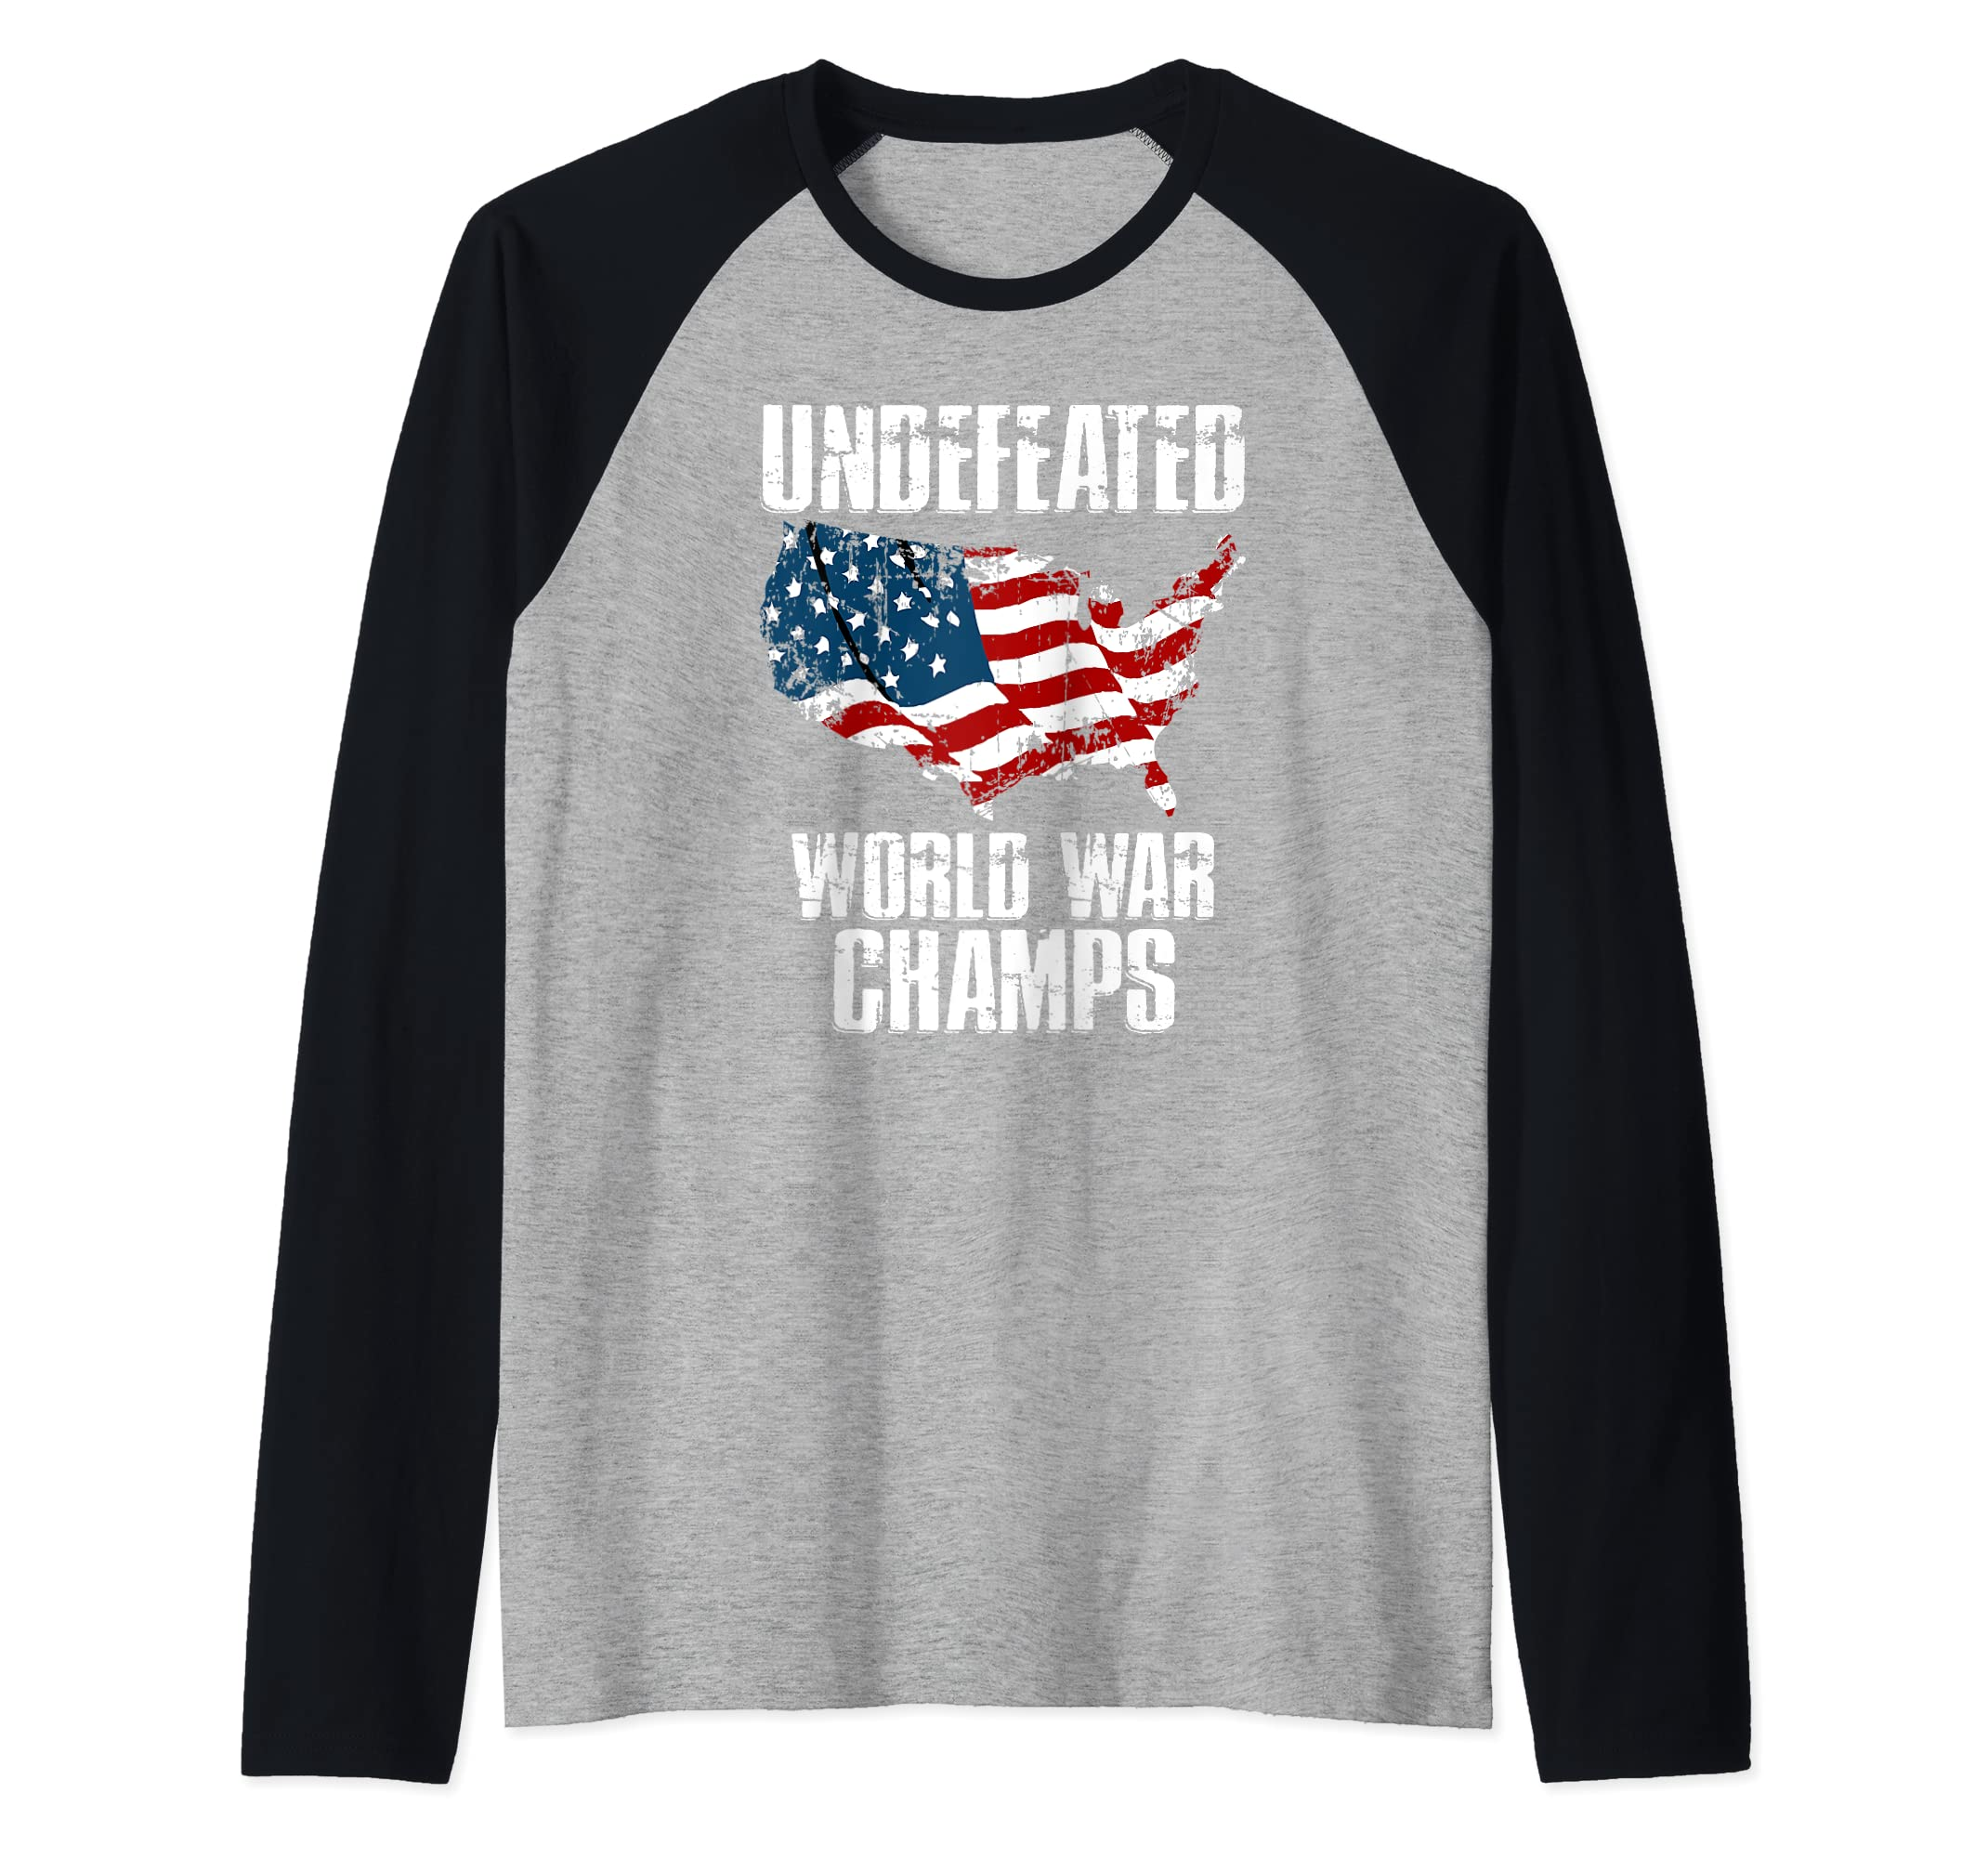 12735cb4 Amazon.com: Vintage USA World War Champions July 4th Freedom Shirt Raglan  Baseball Tee: Clothing